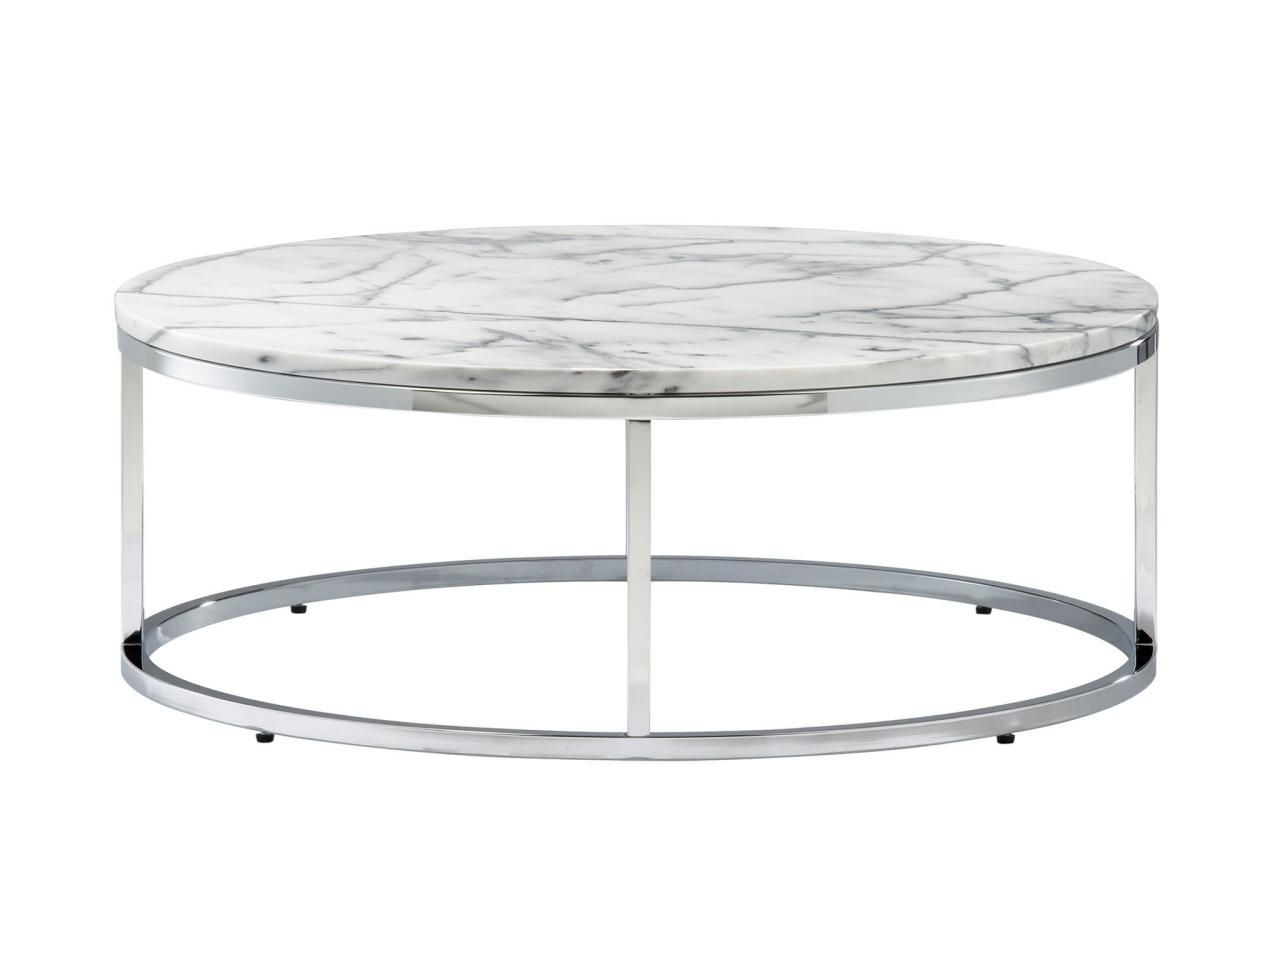 """Smart Round 12 1/4""""h X 33"""" Diameter Marble And Steel Coffee Table Intended For Most Current Smart Round Marble Top Coffee Tables (View 18 of 20)"""